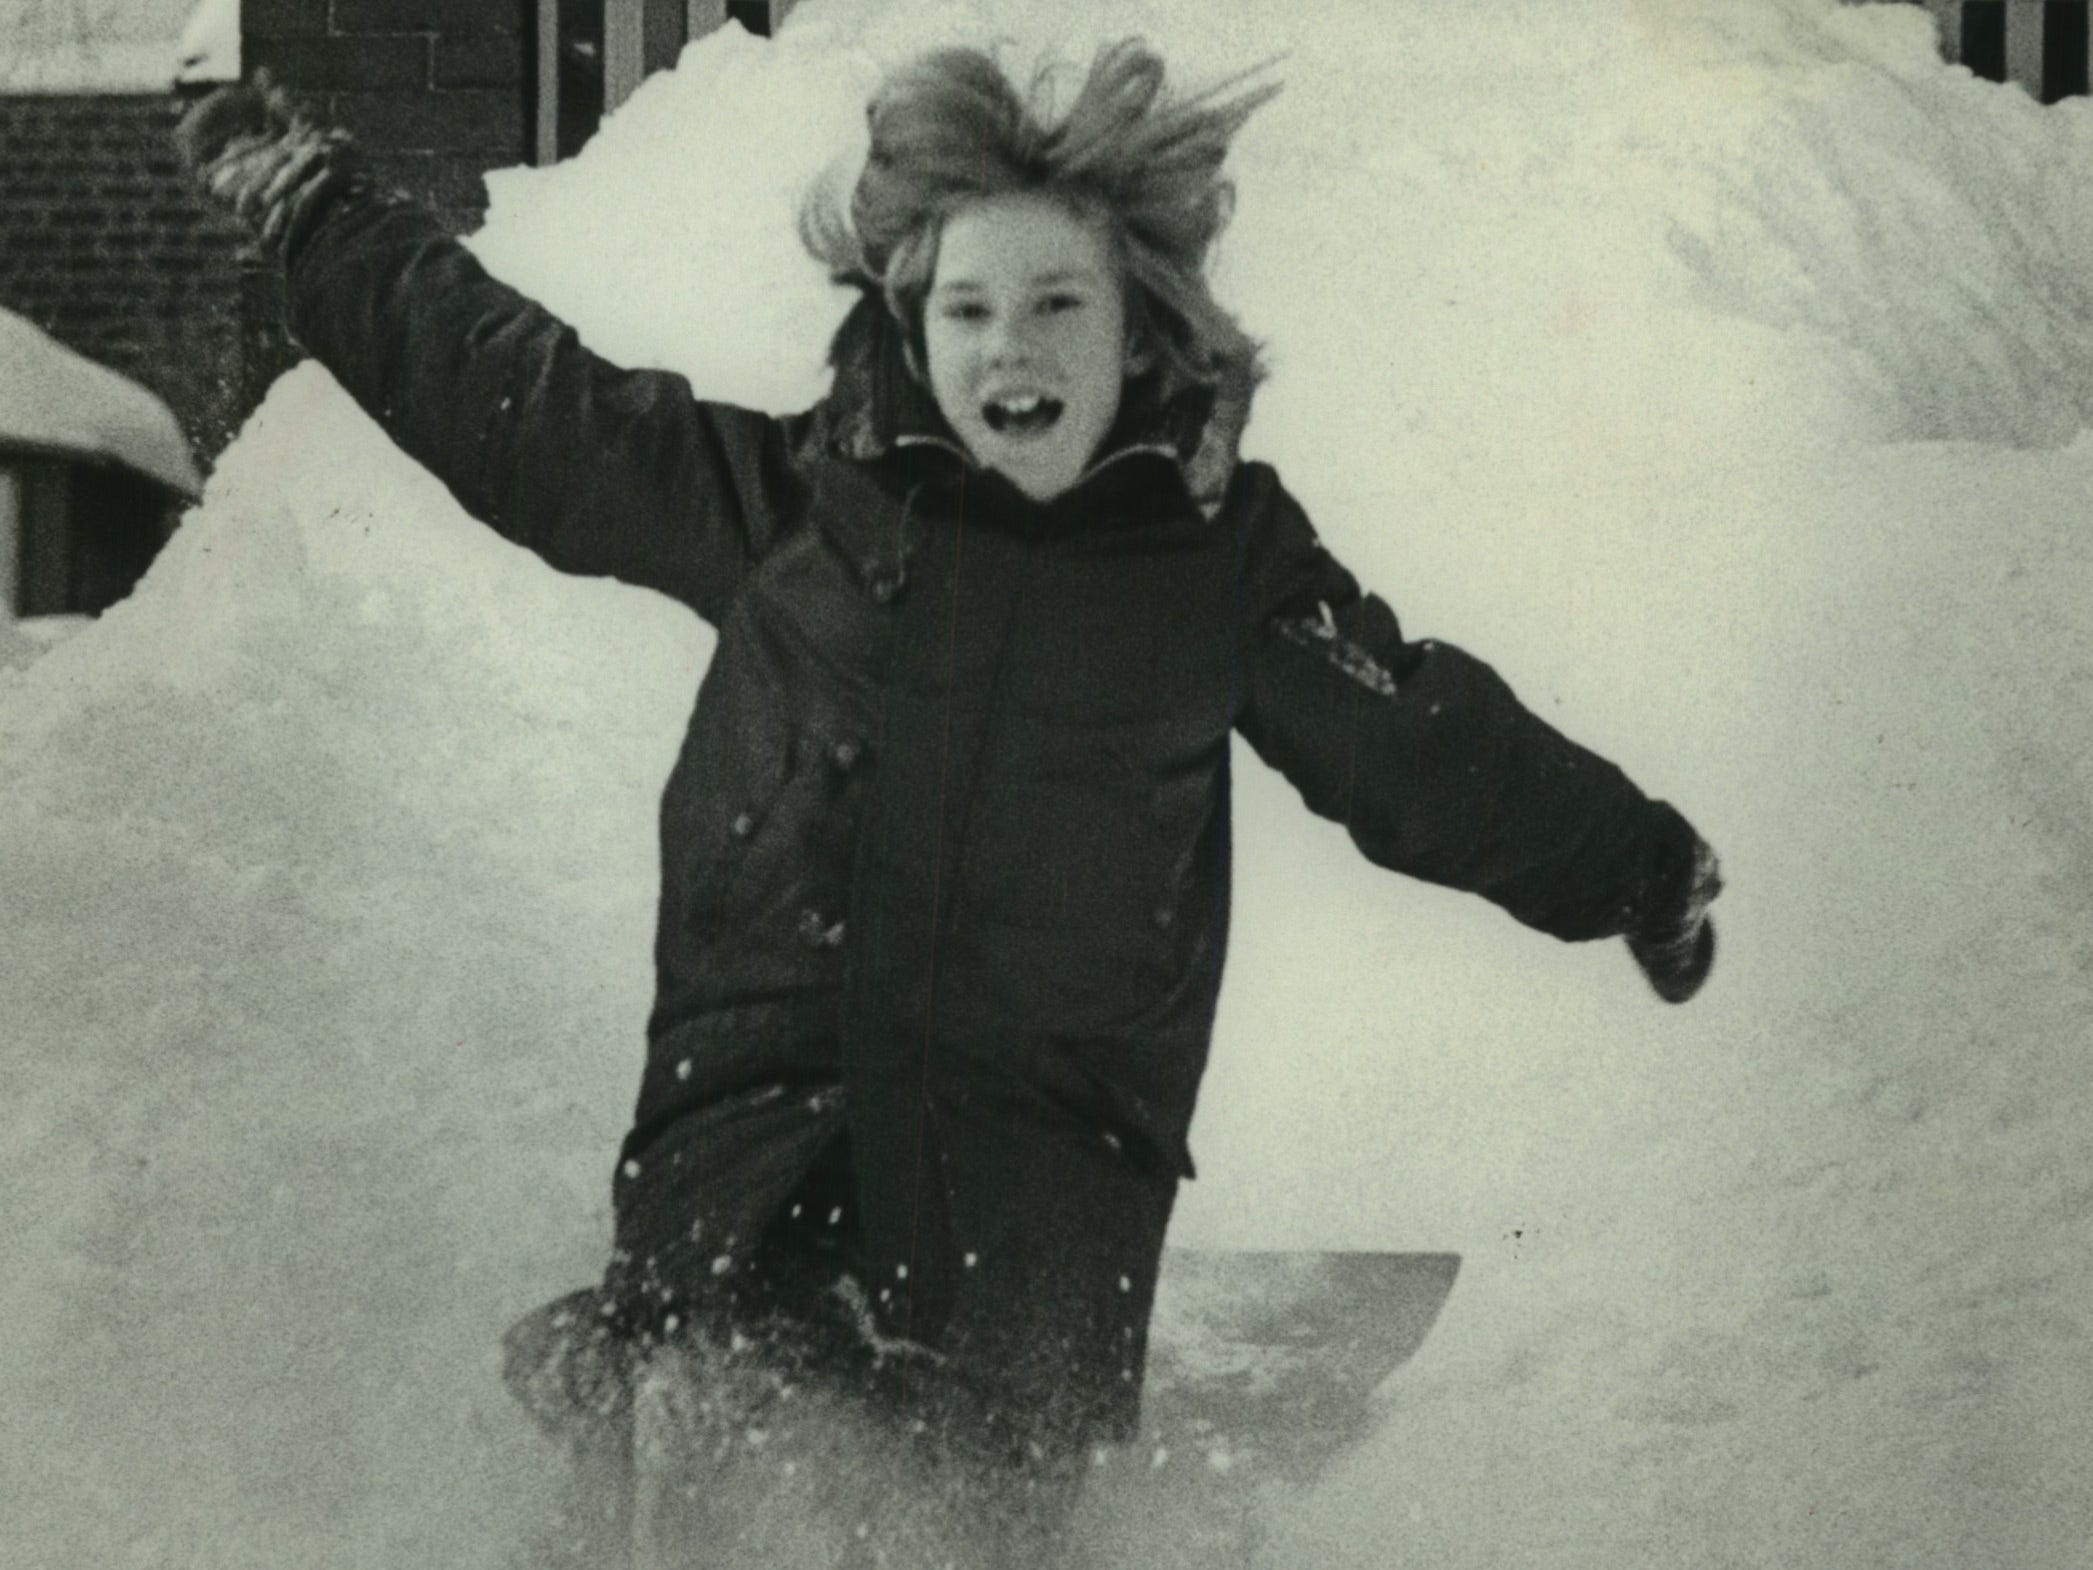 Alecia Litzau slides down a hill of snow that she and her friends made all the way up to her house's porch railing on Milwaukee's east side. This photo was published in the Jan. 17, 1979, Milwaukee Journal.